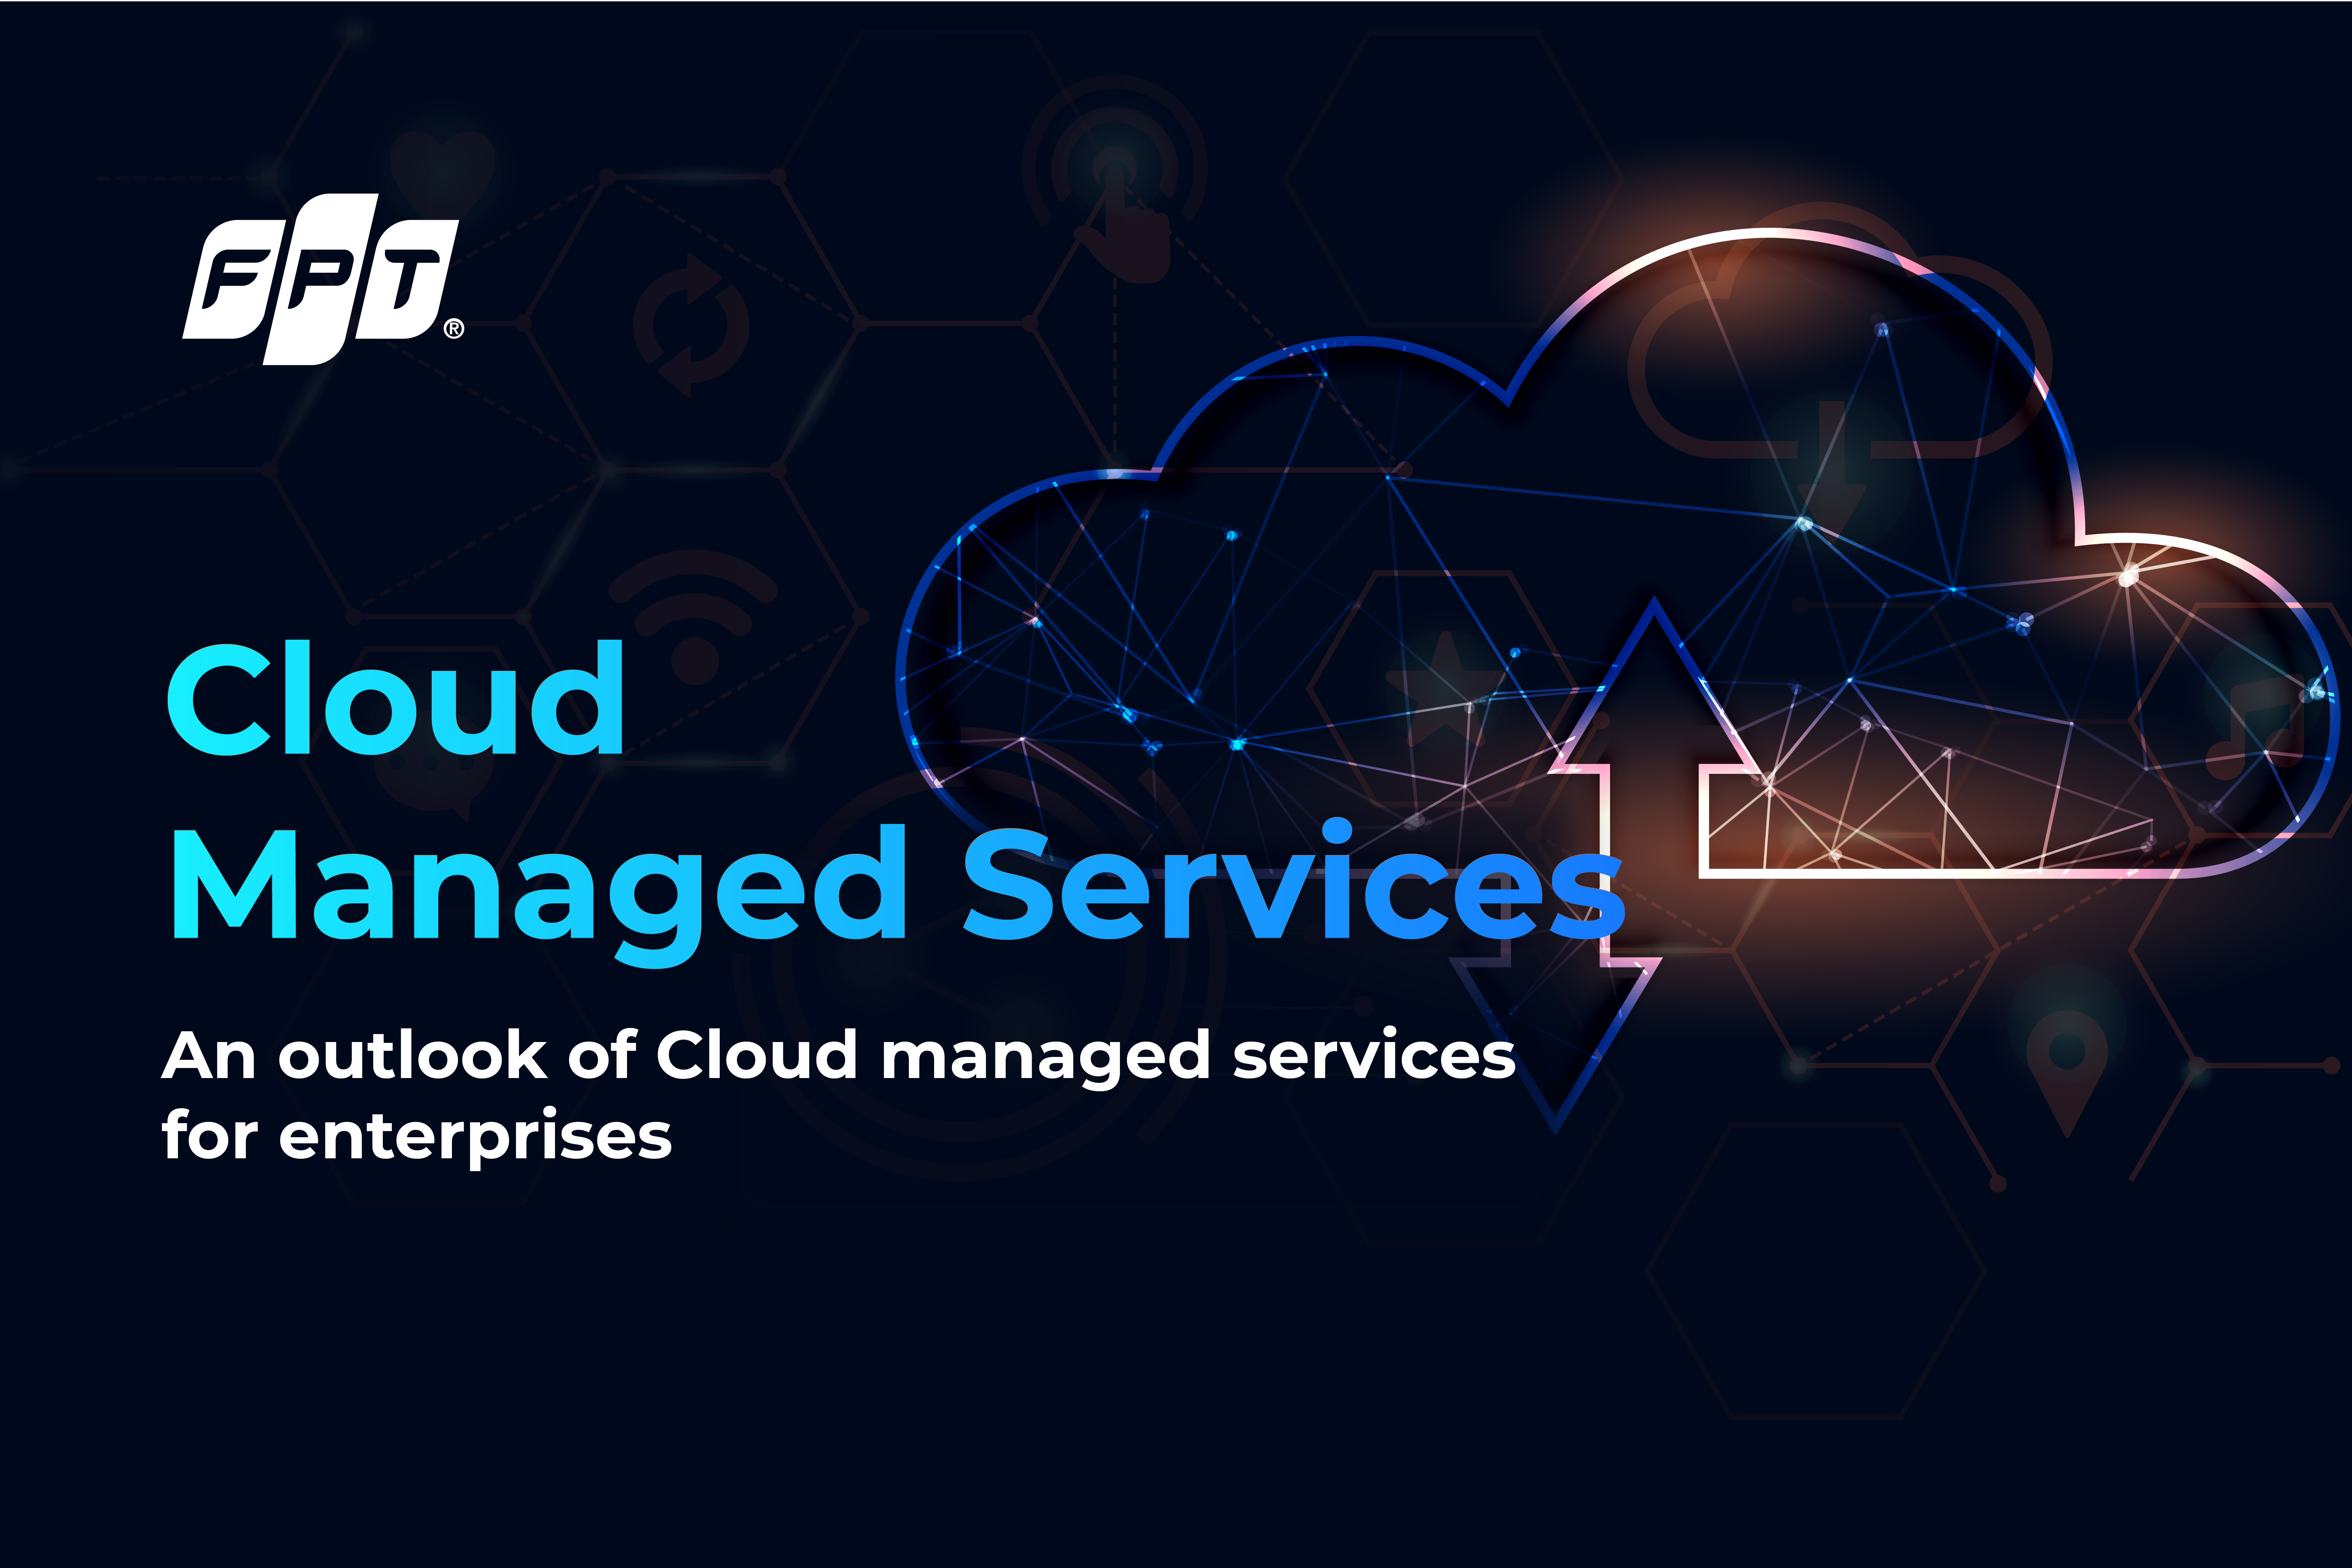 An Outlook of Cloud Managed Services for Enterprises